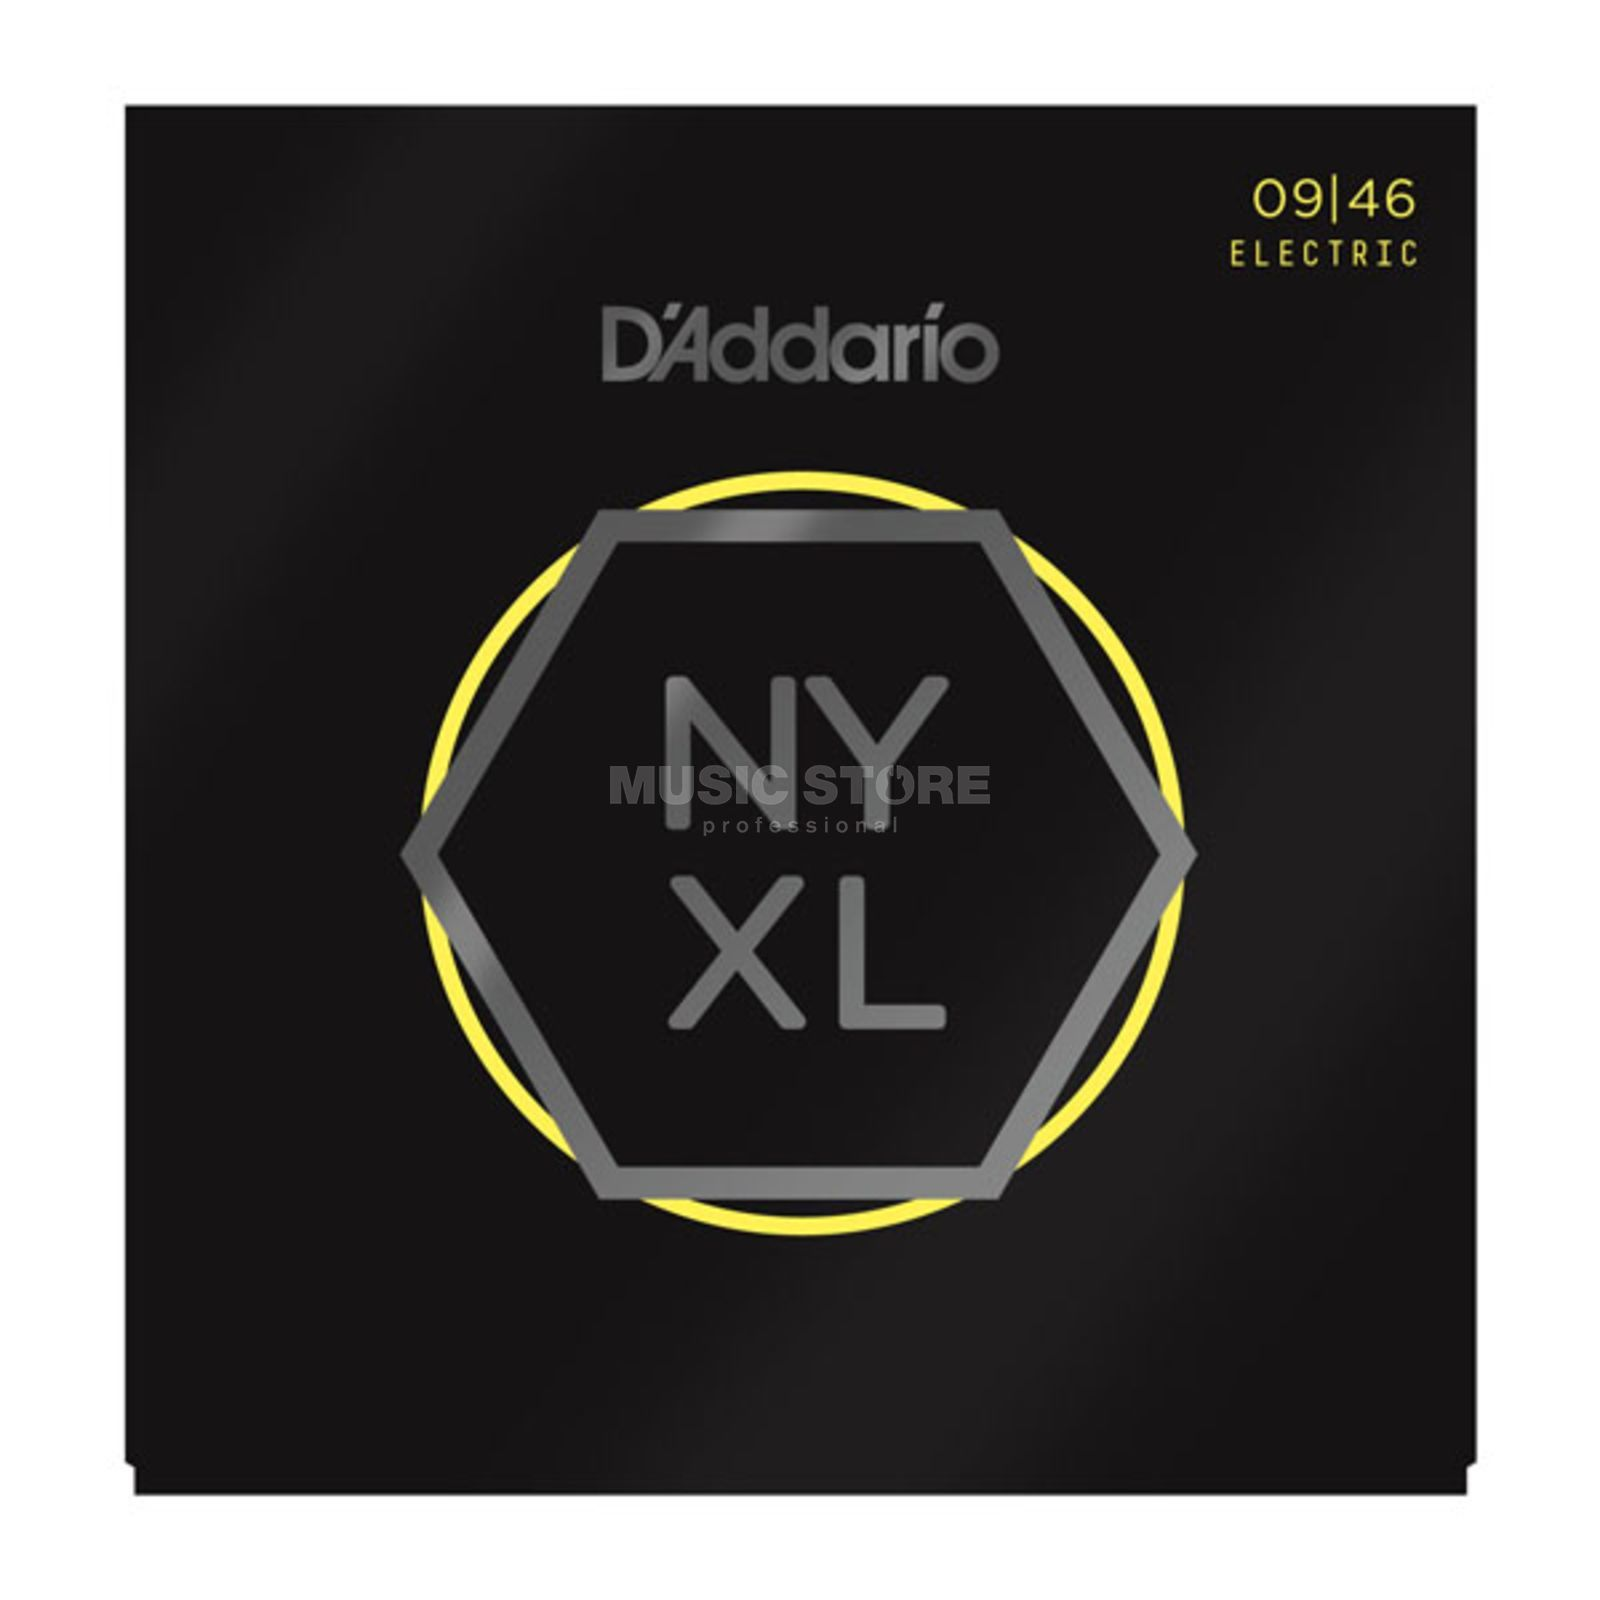 D'Addario NYXL 9-46 Carbon Steel Alloy  Product Image